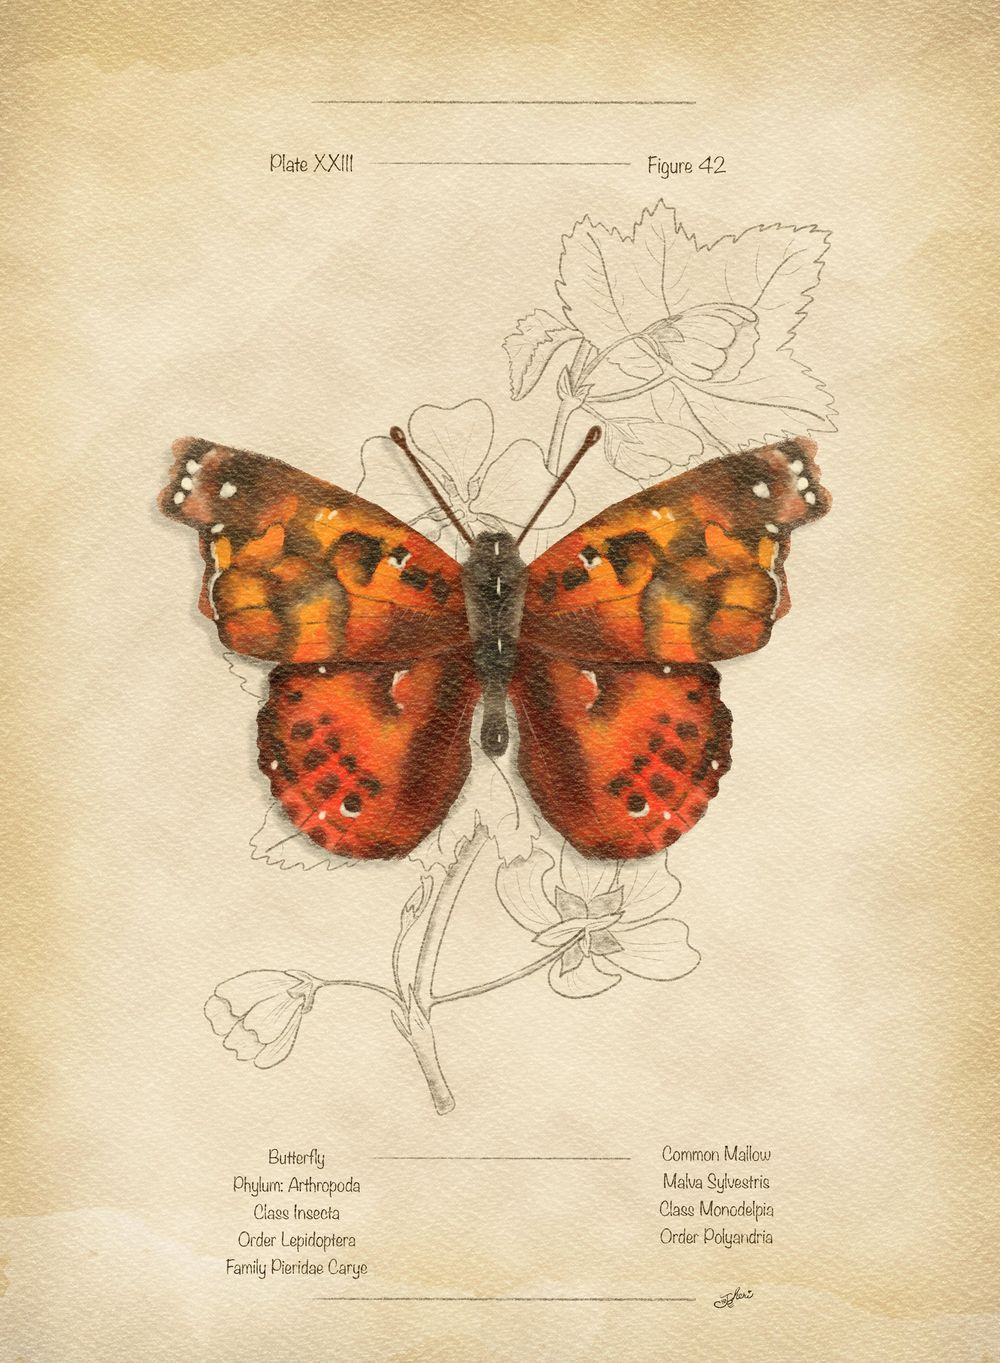 Butterfly Beauty - image 1 - student project